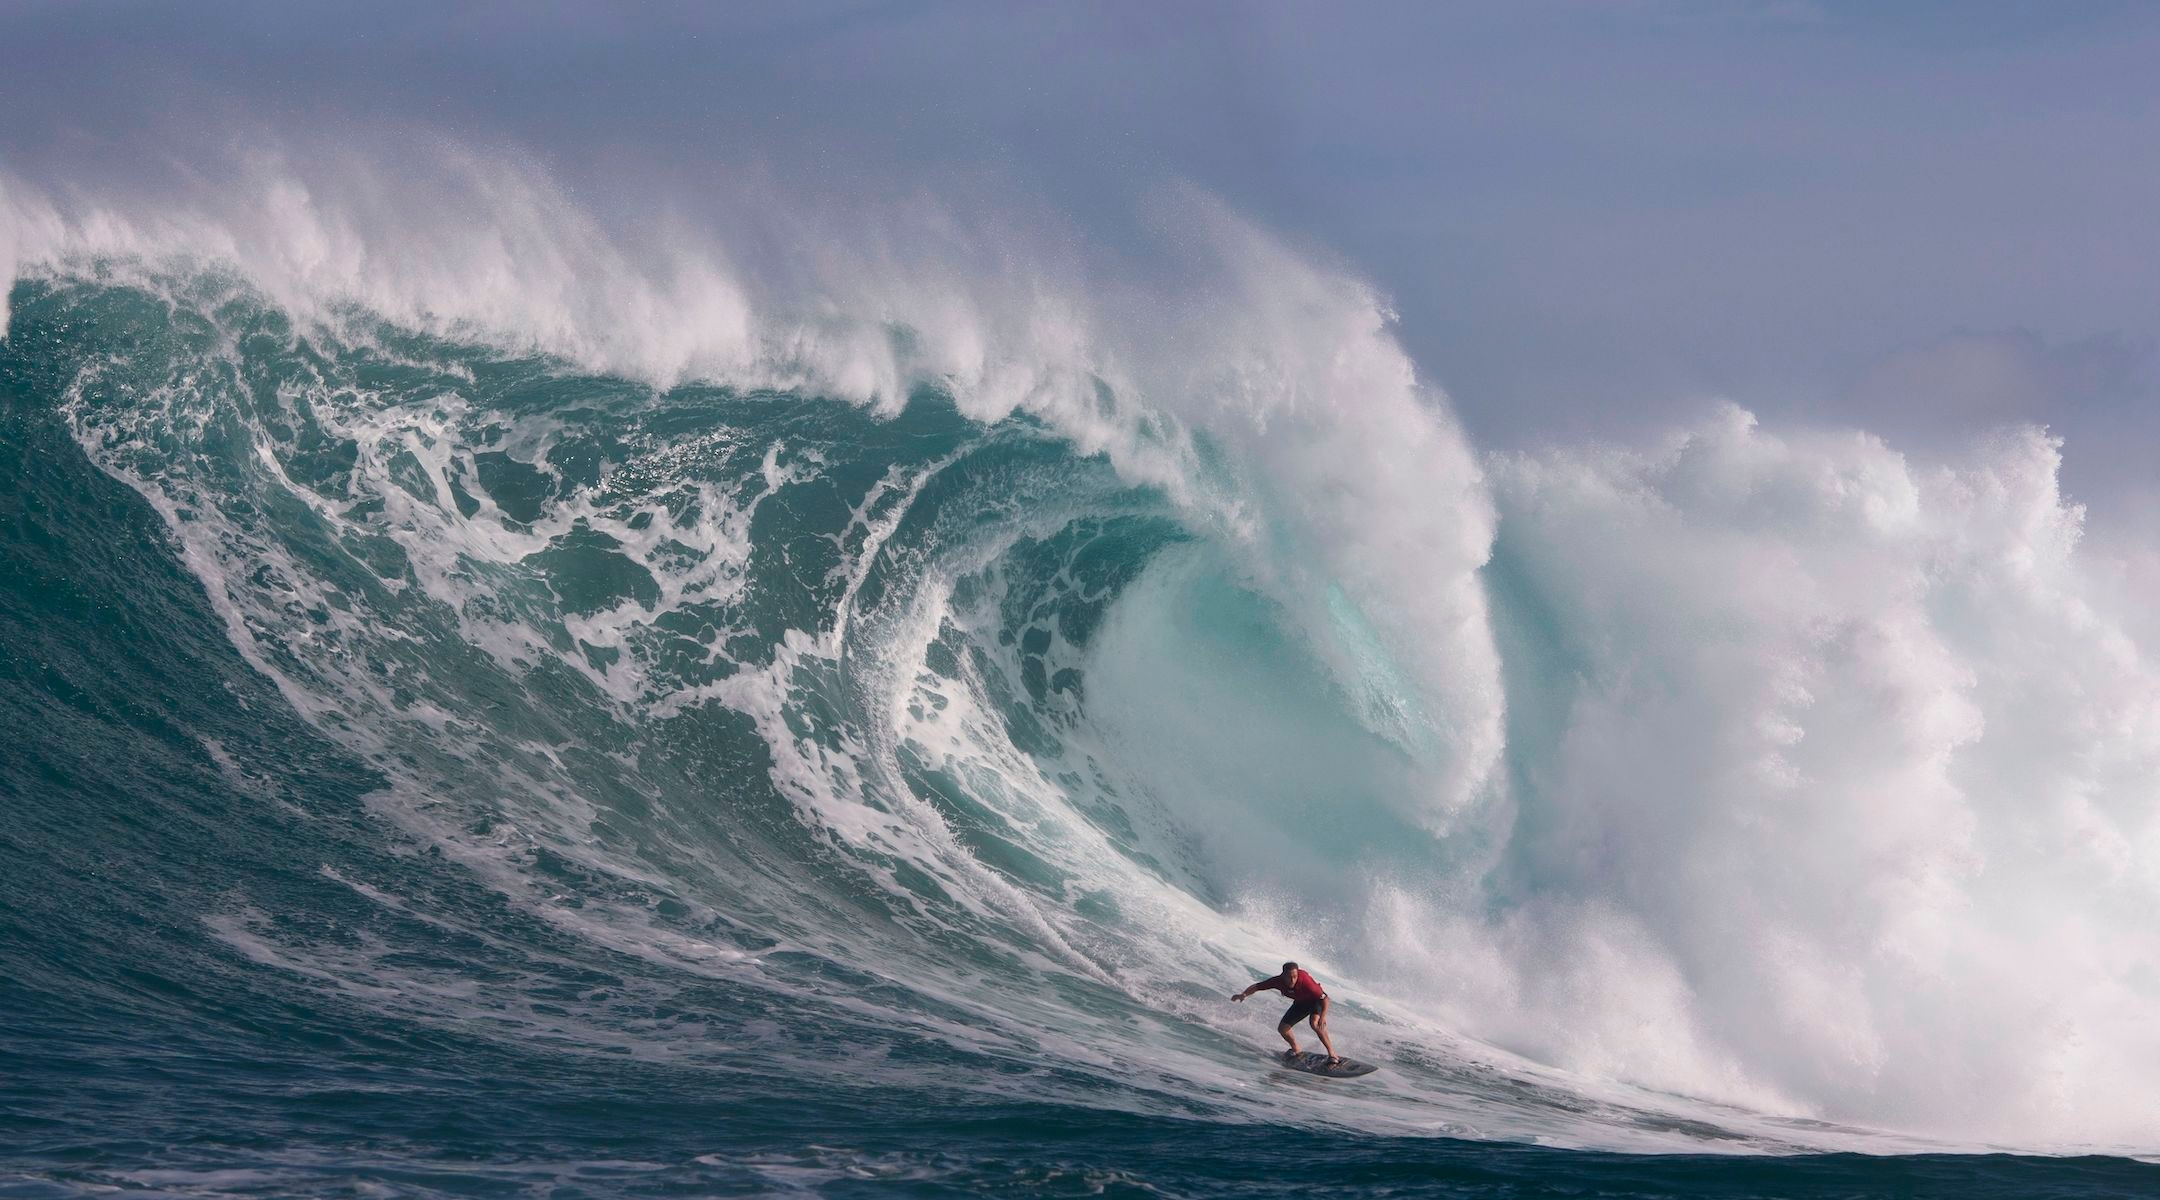 Hawaiian-Jewish surfer Makua Rothman may have ridden the largest wave of all time